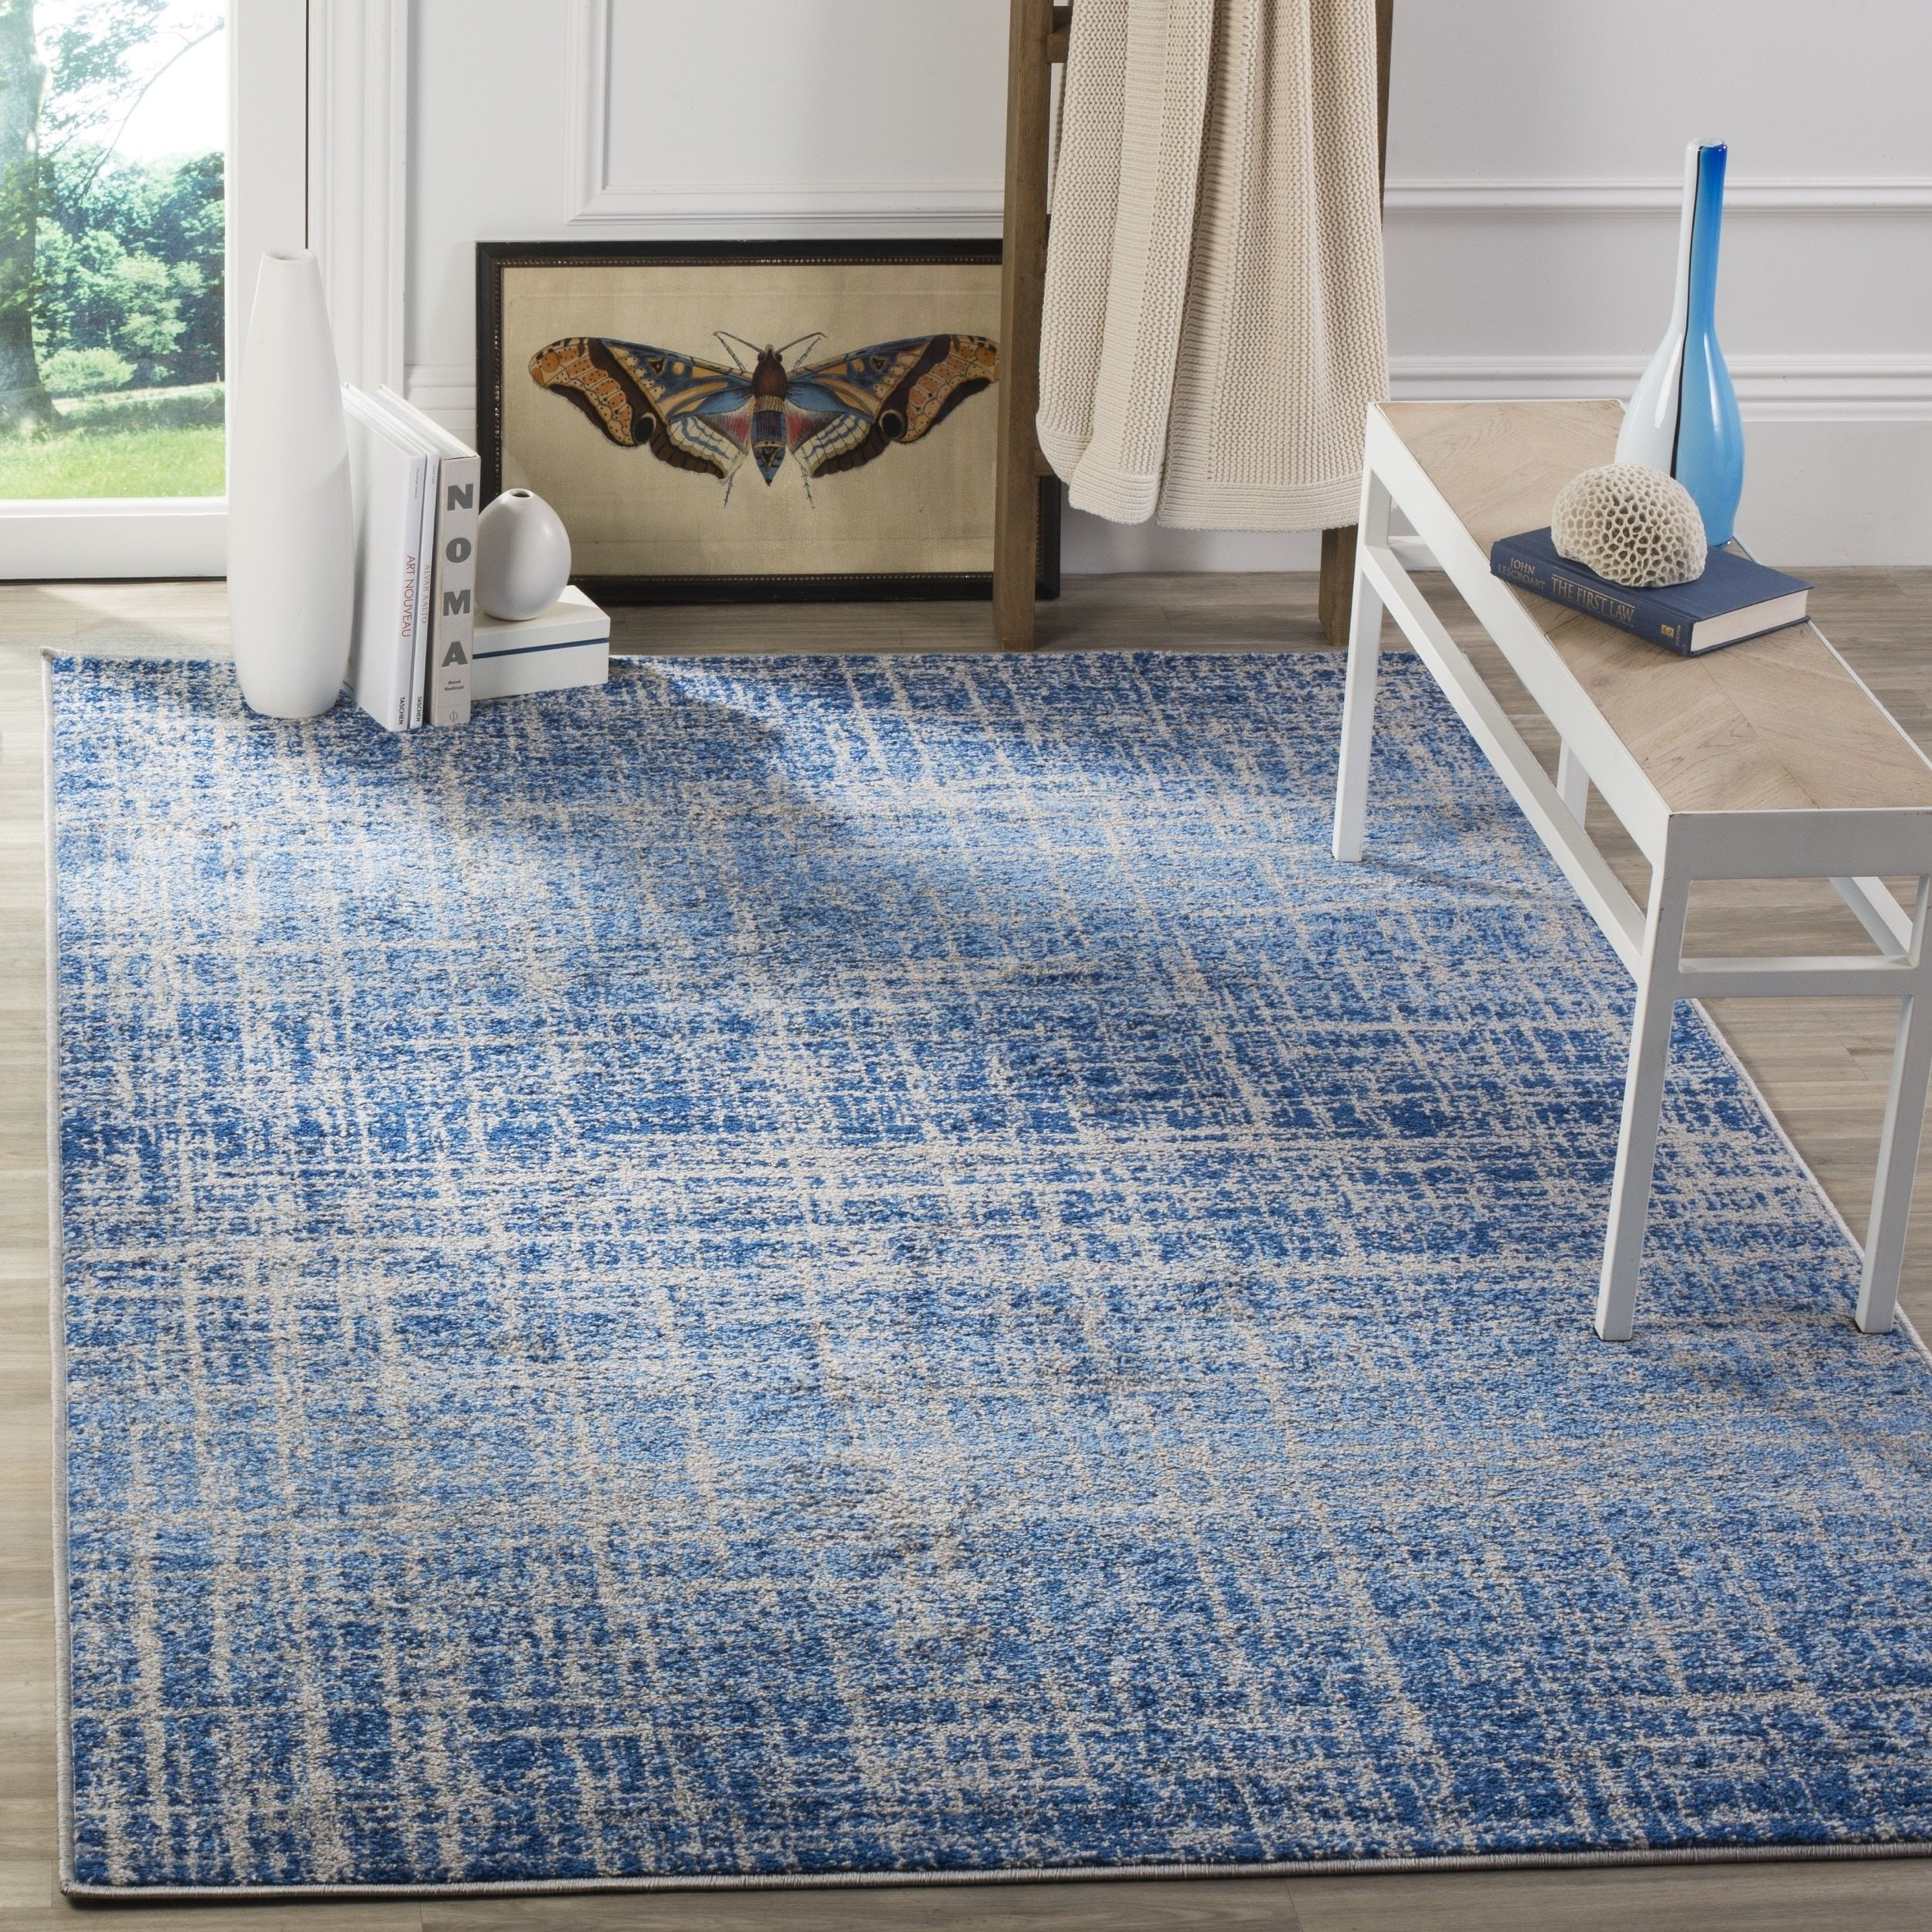 Blue Modern Area Rugs Free Shipping On Orders Over 45 Find The